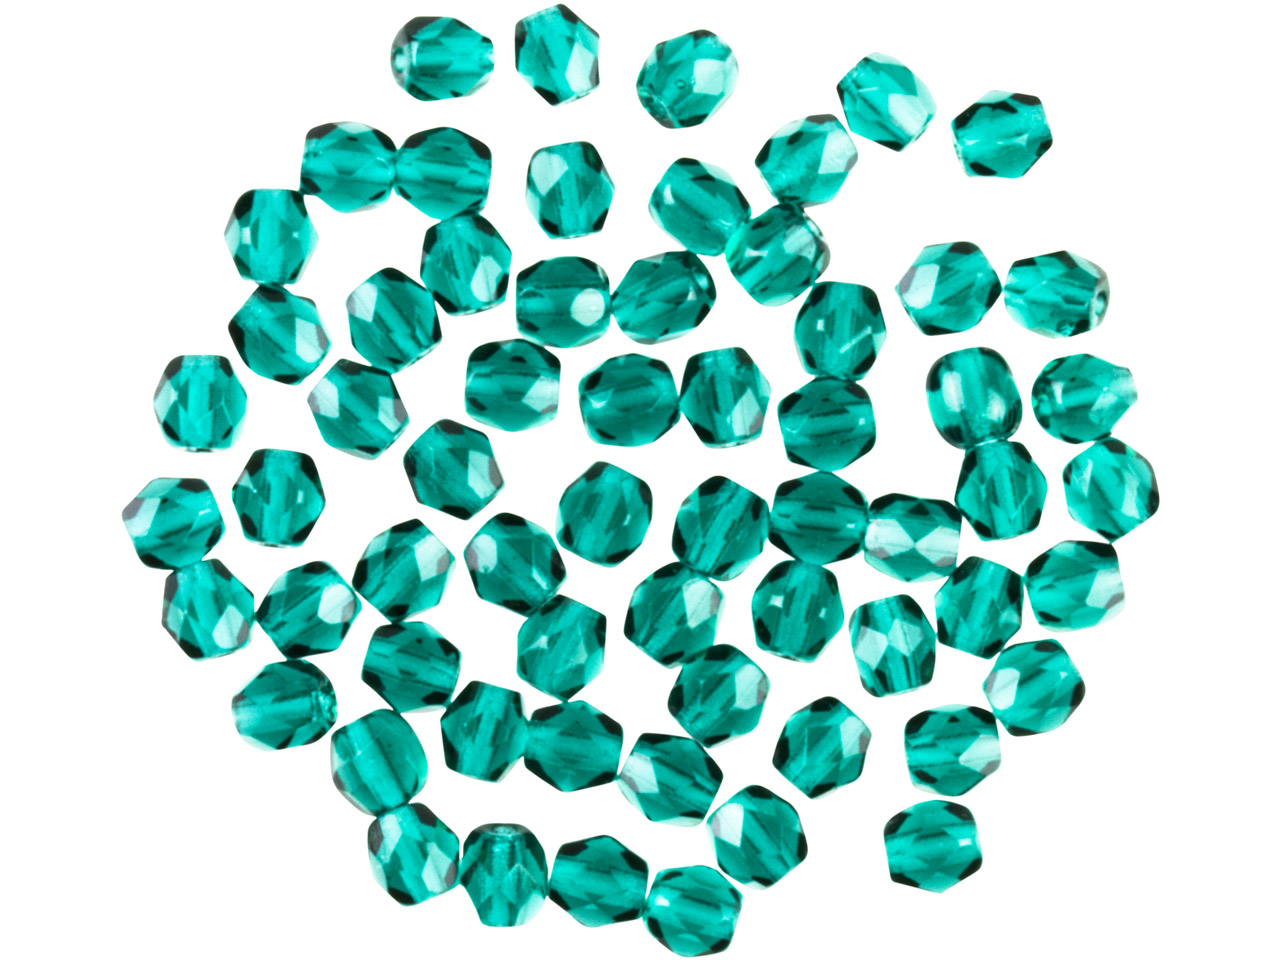 Preciosa 4mm Czech Fire Polished   Glass Beads Emerald, Pack of 100,